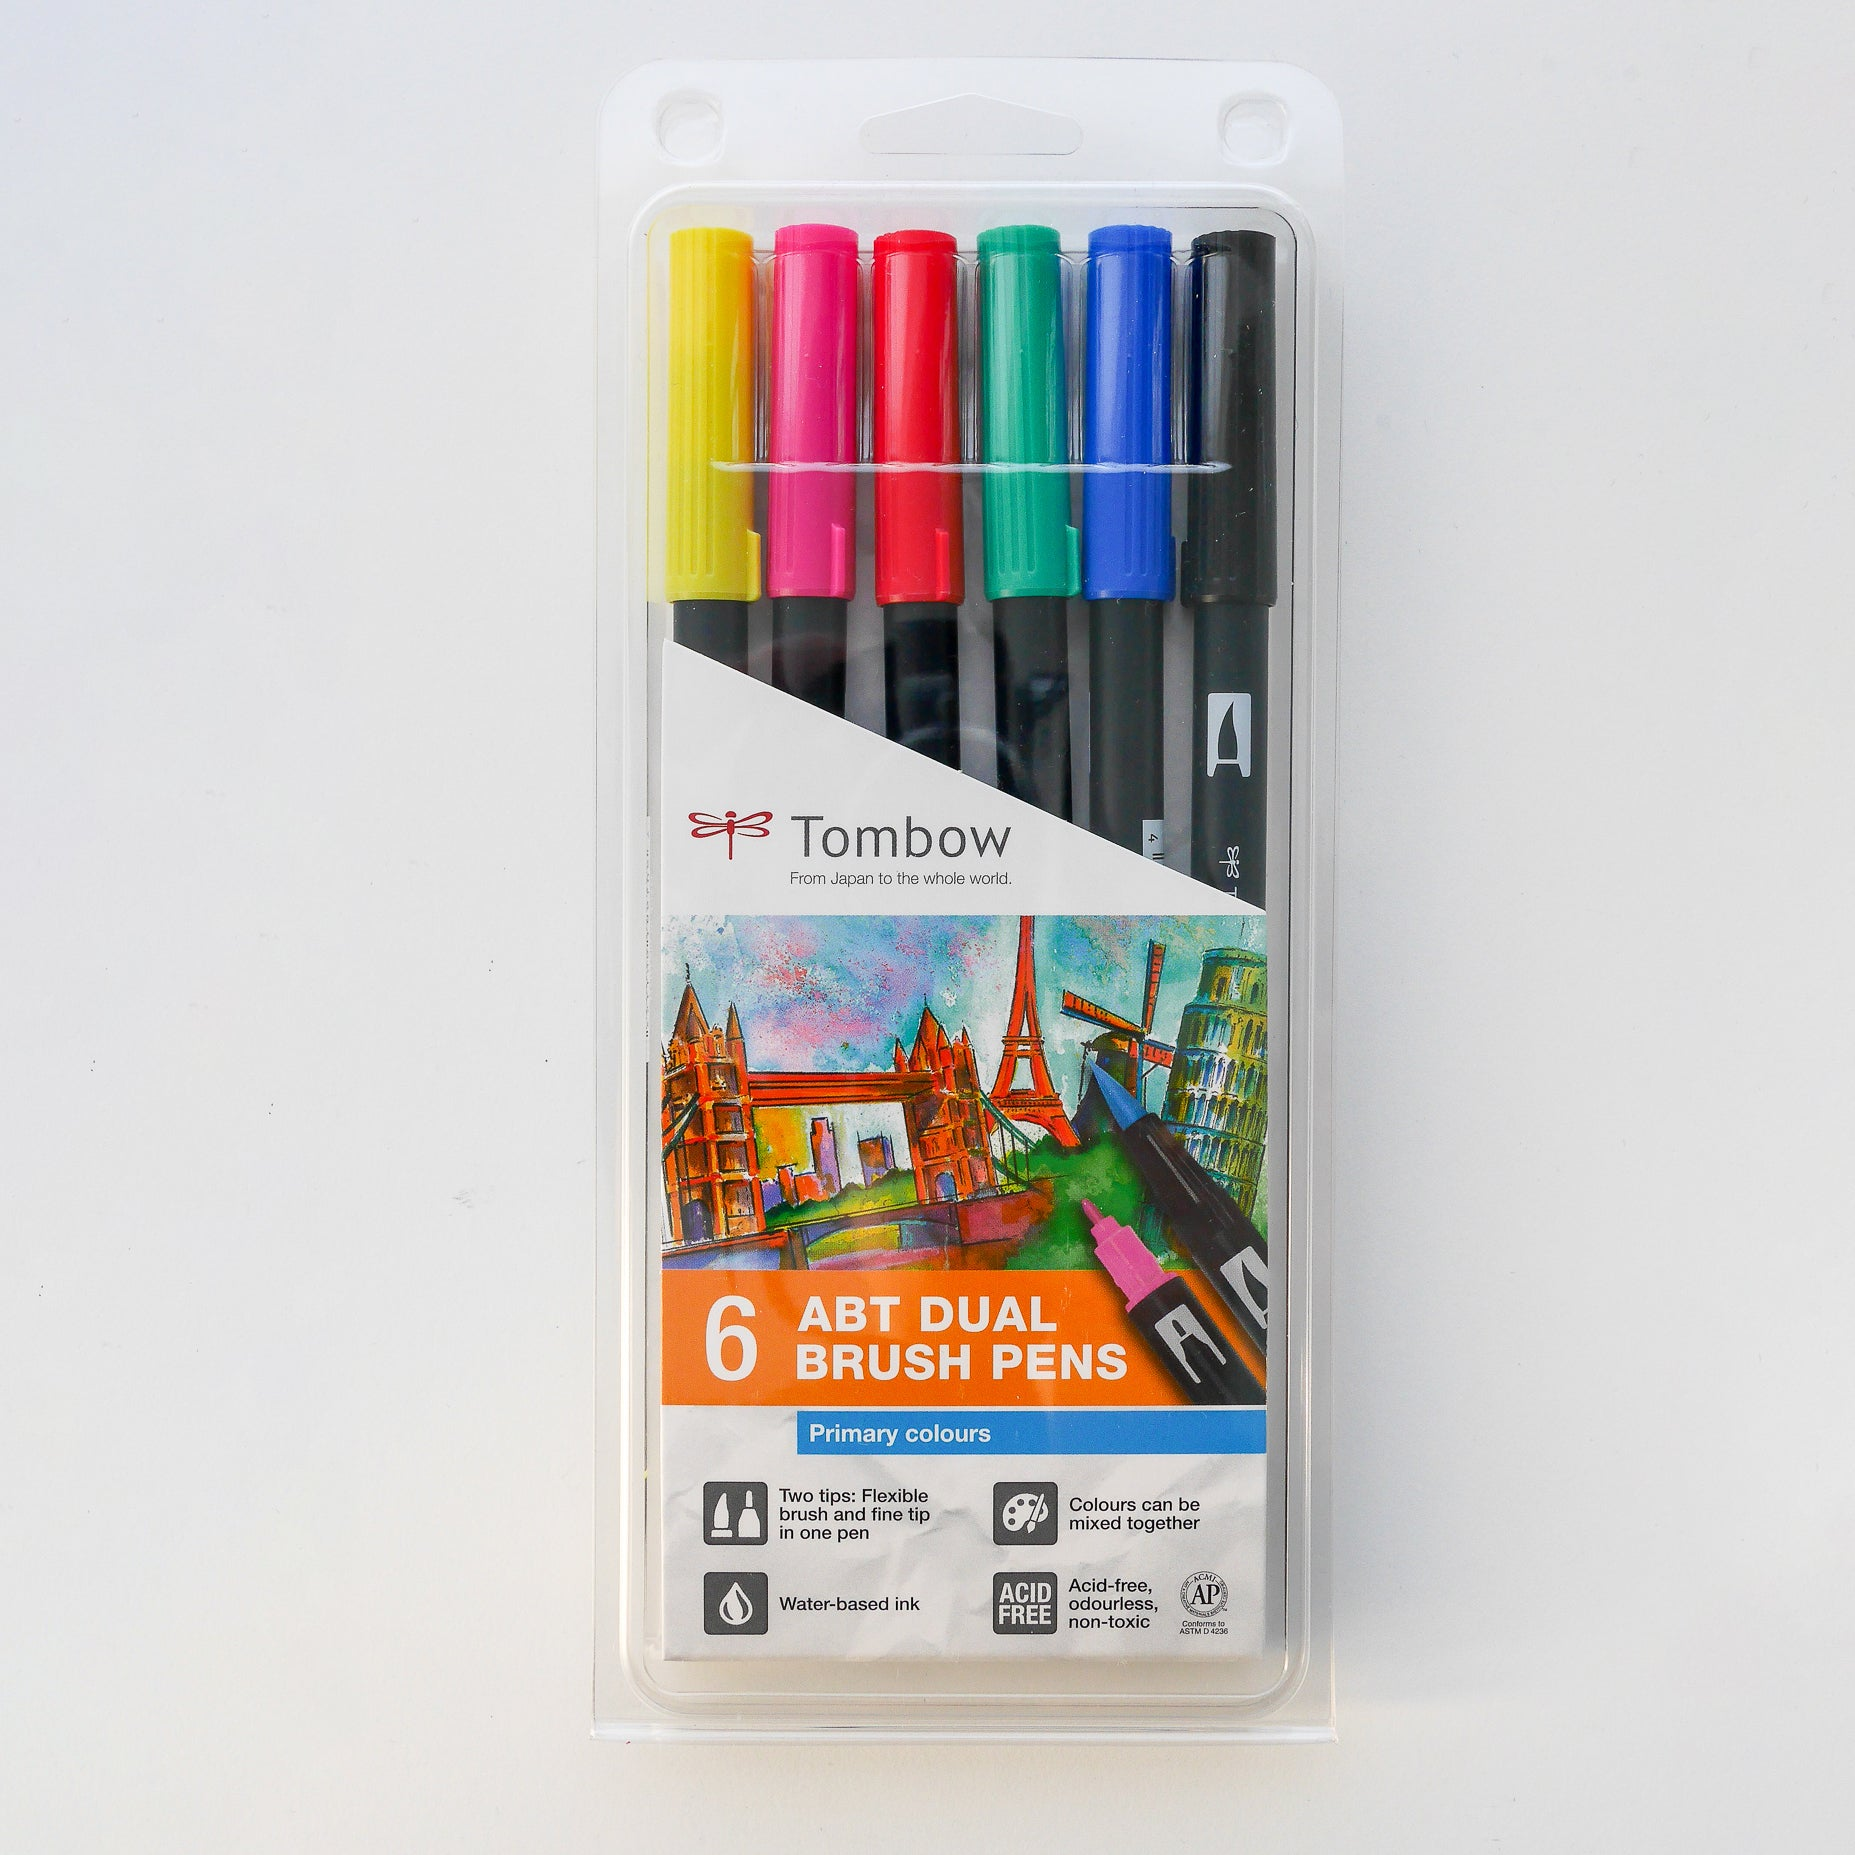 Tombow Dual Brush pen ABT - Primaire kleuren - set van 6